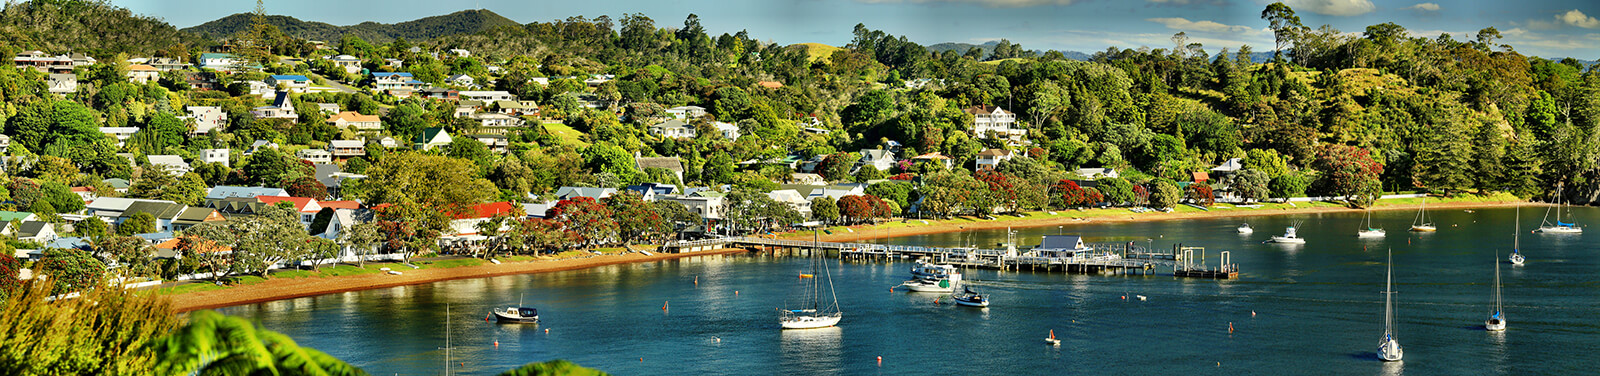 Photo of Pohutukawa trees in flower in Russell, Bay of Islands